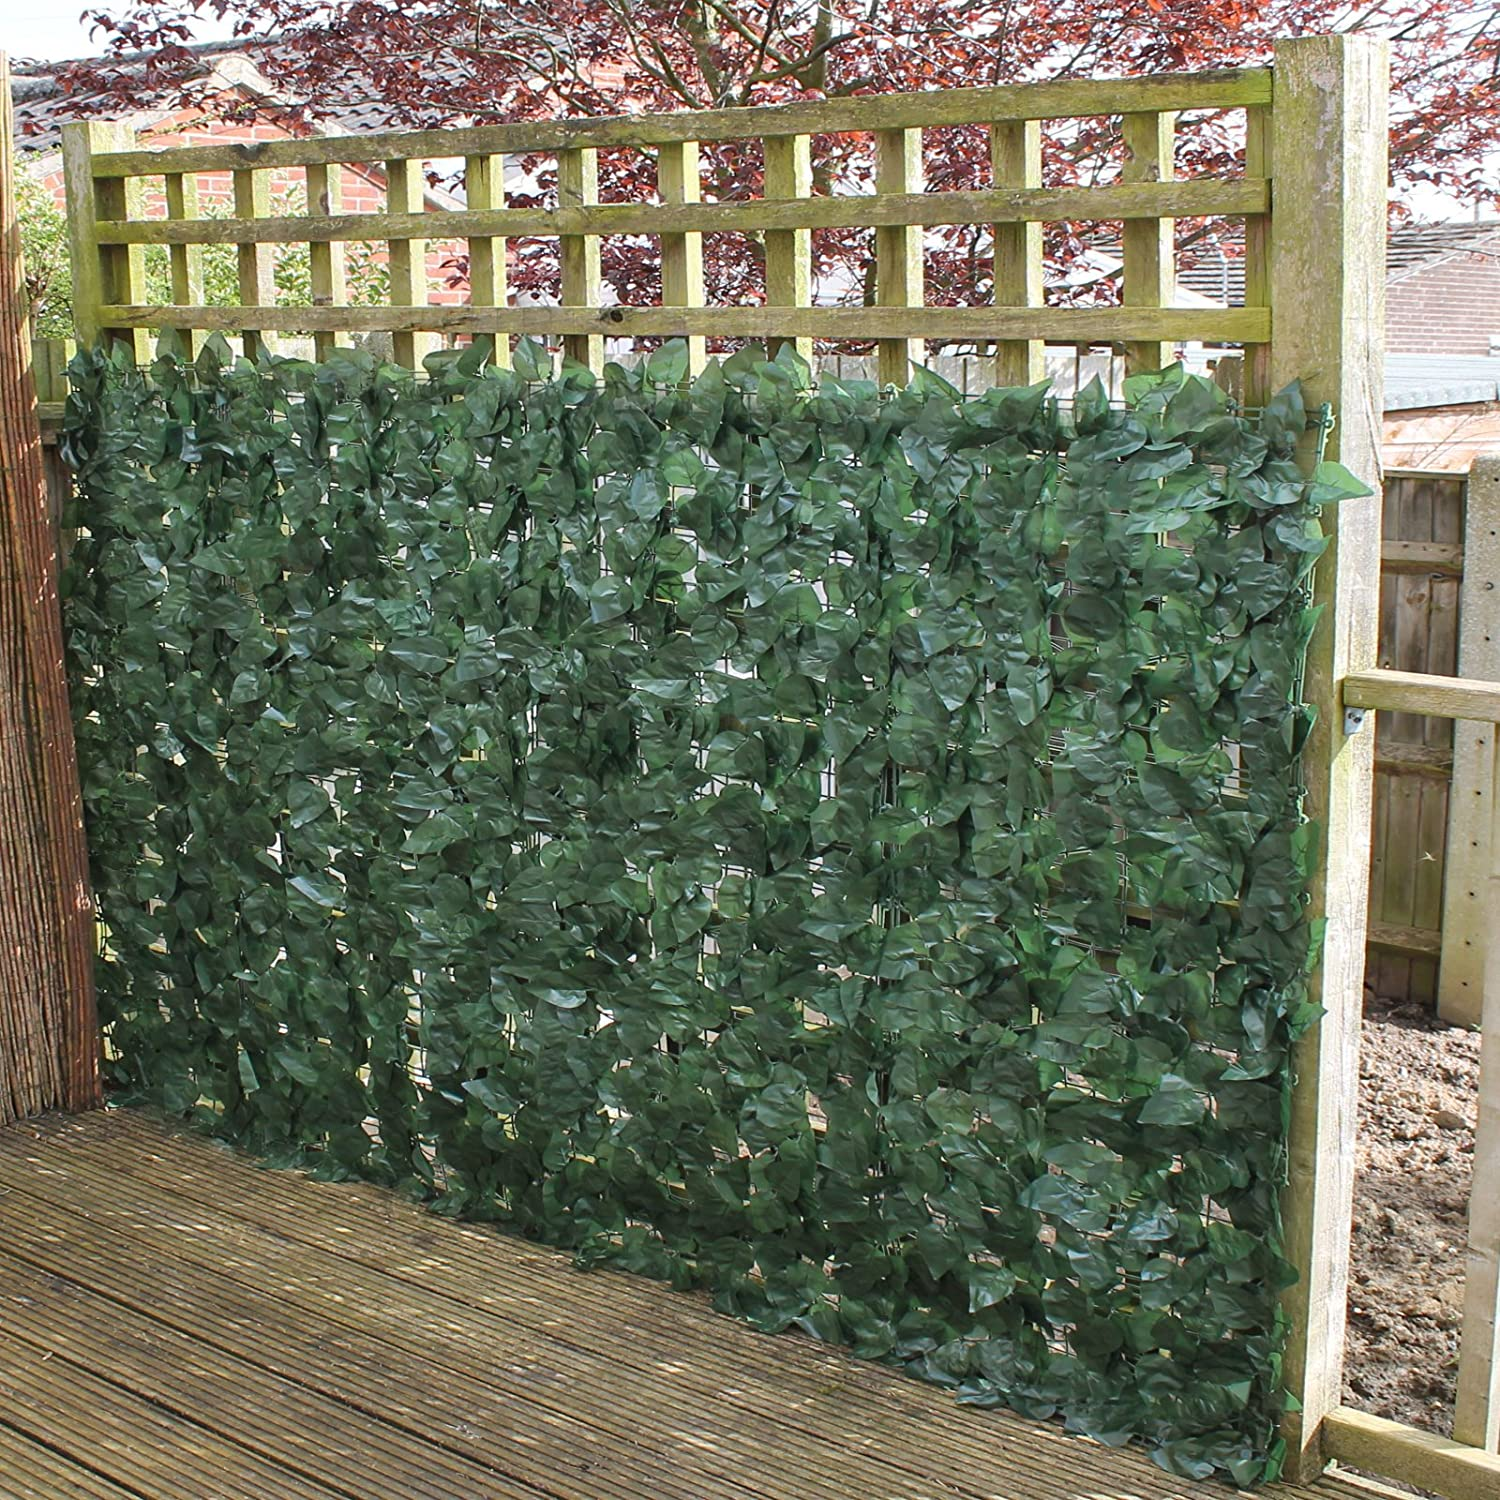 Delightful True Products Ivy Artificial Screening Leaf Hedge Panels On Roll Privacy  Garden Fence, Green, 1.5m X 3m: Amazon.co.uk: DIY U0026 Tools